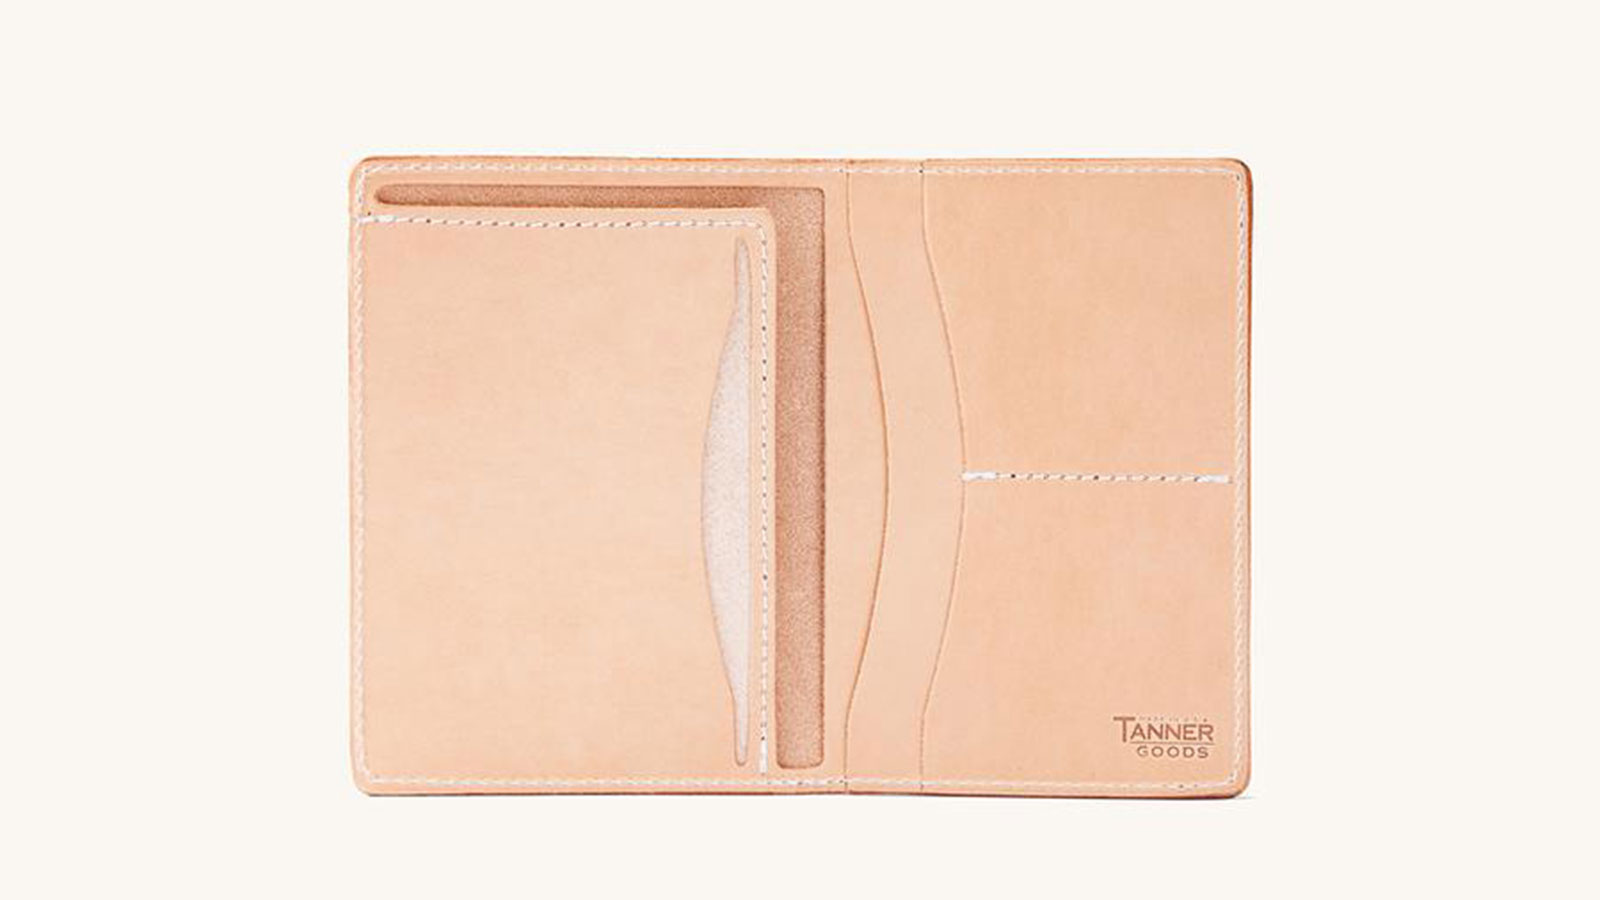 Tanner Goods Travel Passport Holder | best passport holders for men